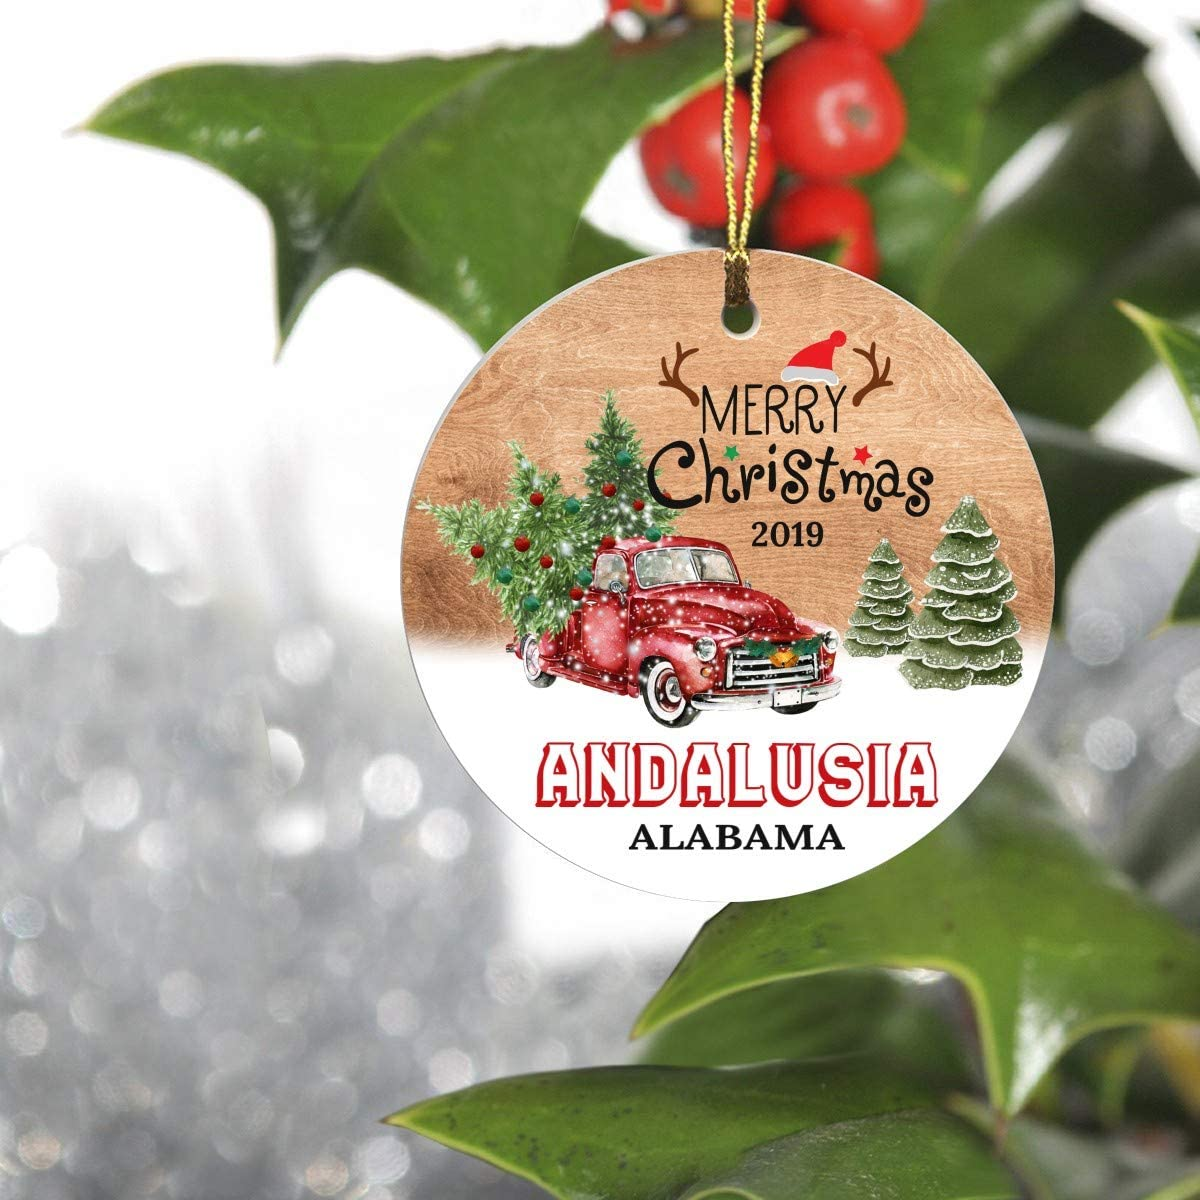 Merry Christmas Andalusia Alabama AL State 2019 - Home Decorations for Living Room, Ceramic Christmas Tree Ornaments 3 Inches - Hometown for Family, Friend